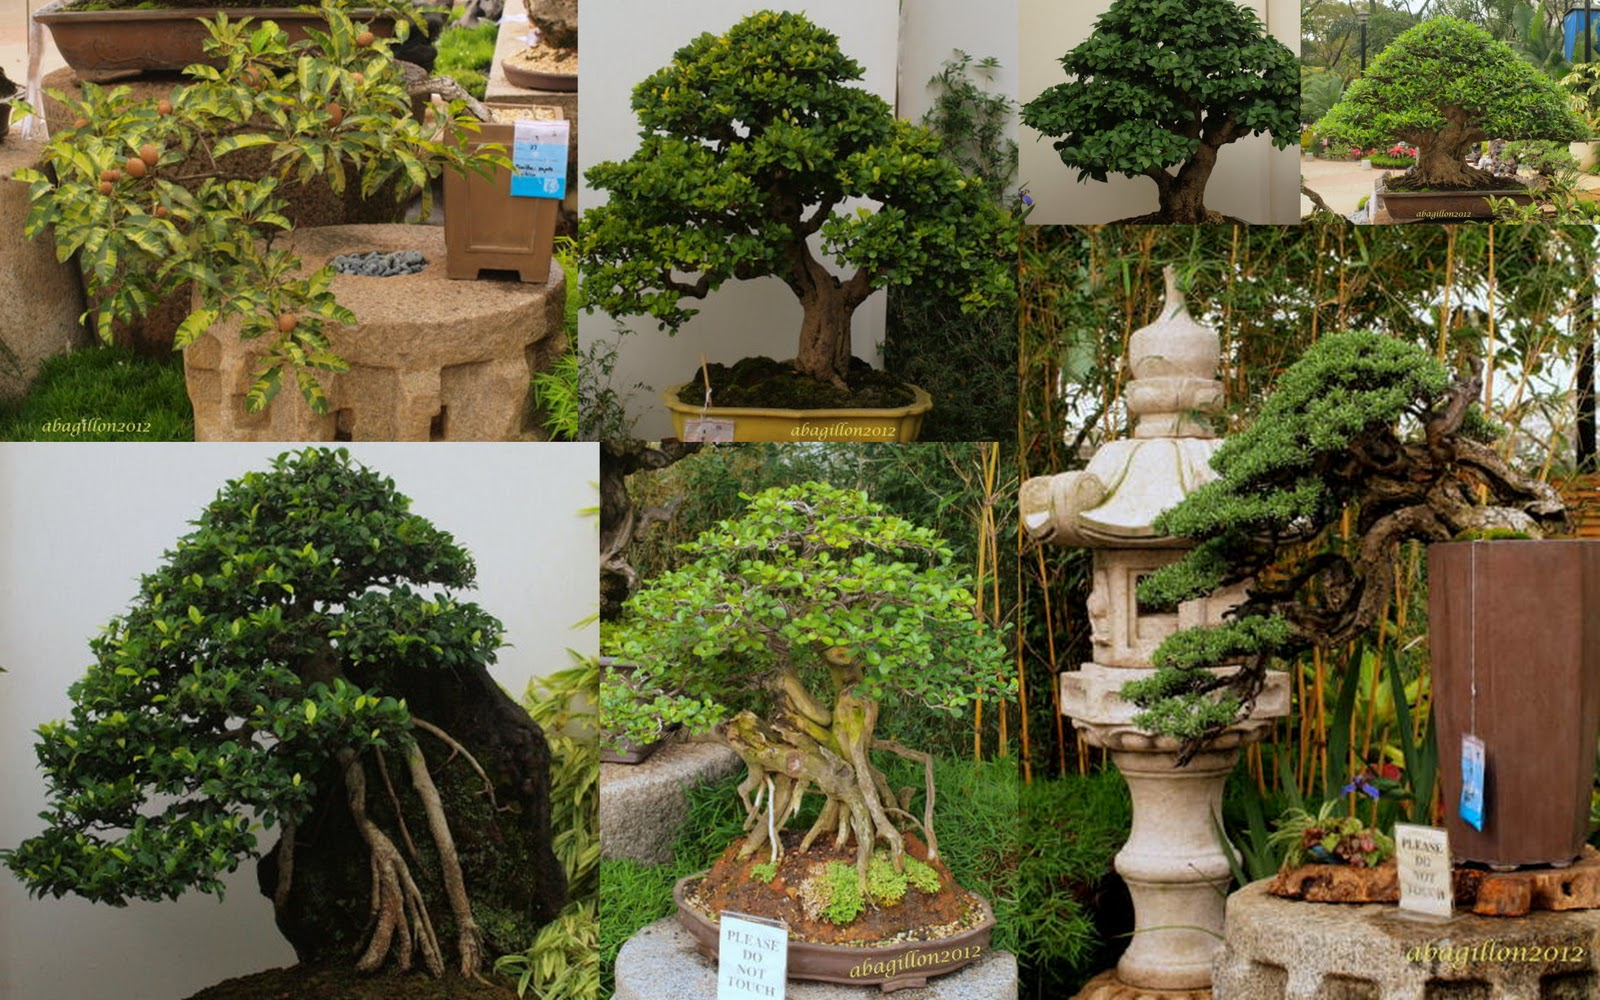 Andrea39s Plants Photos And Travels Bonsai At The Garden Show 2012